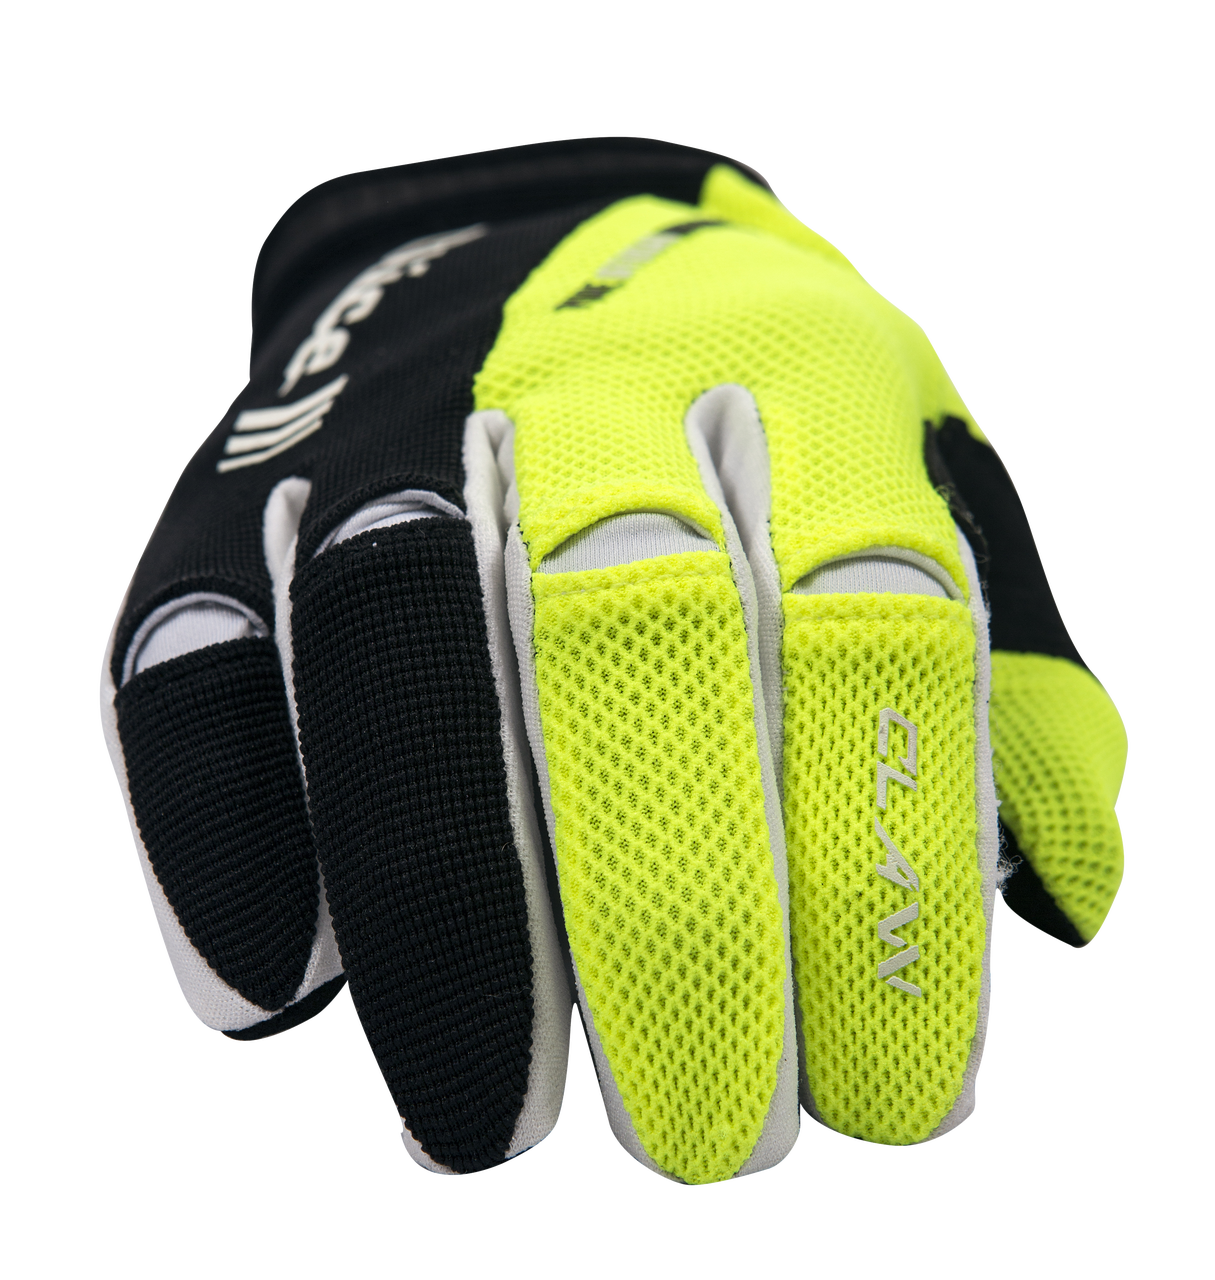 Clice Claw Enduro-MX Gloves, fluorescent yellow